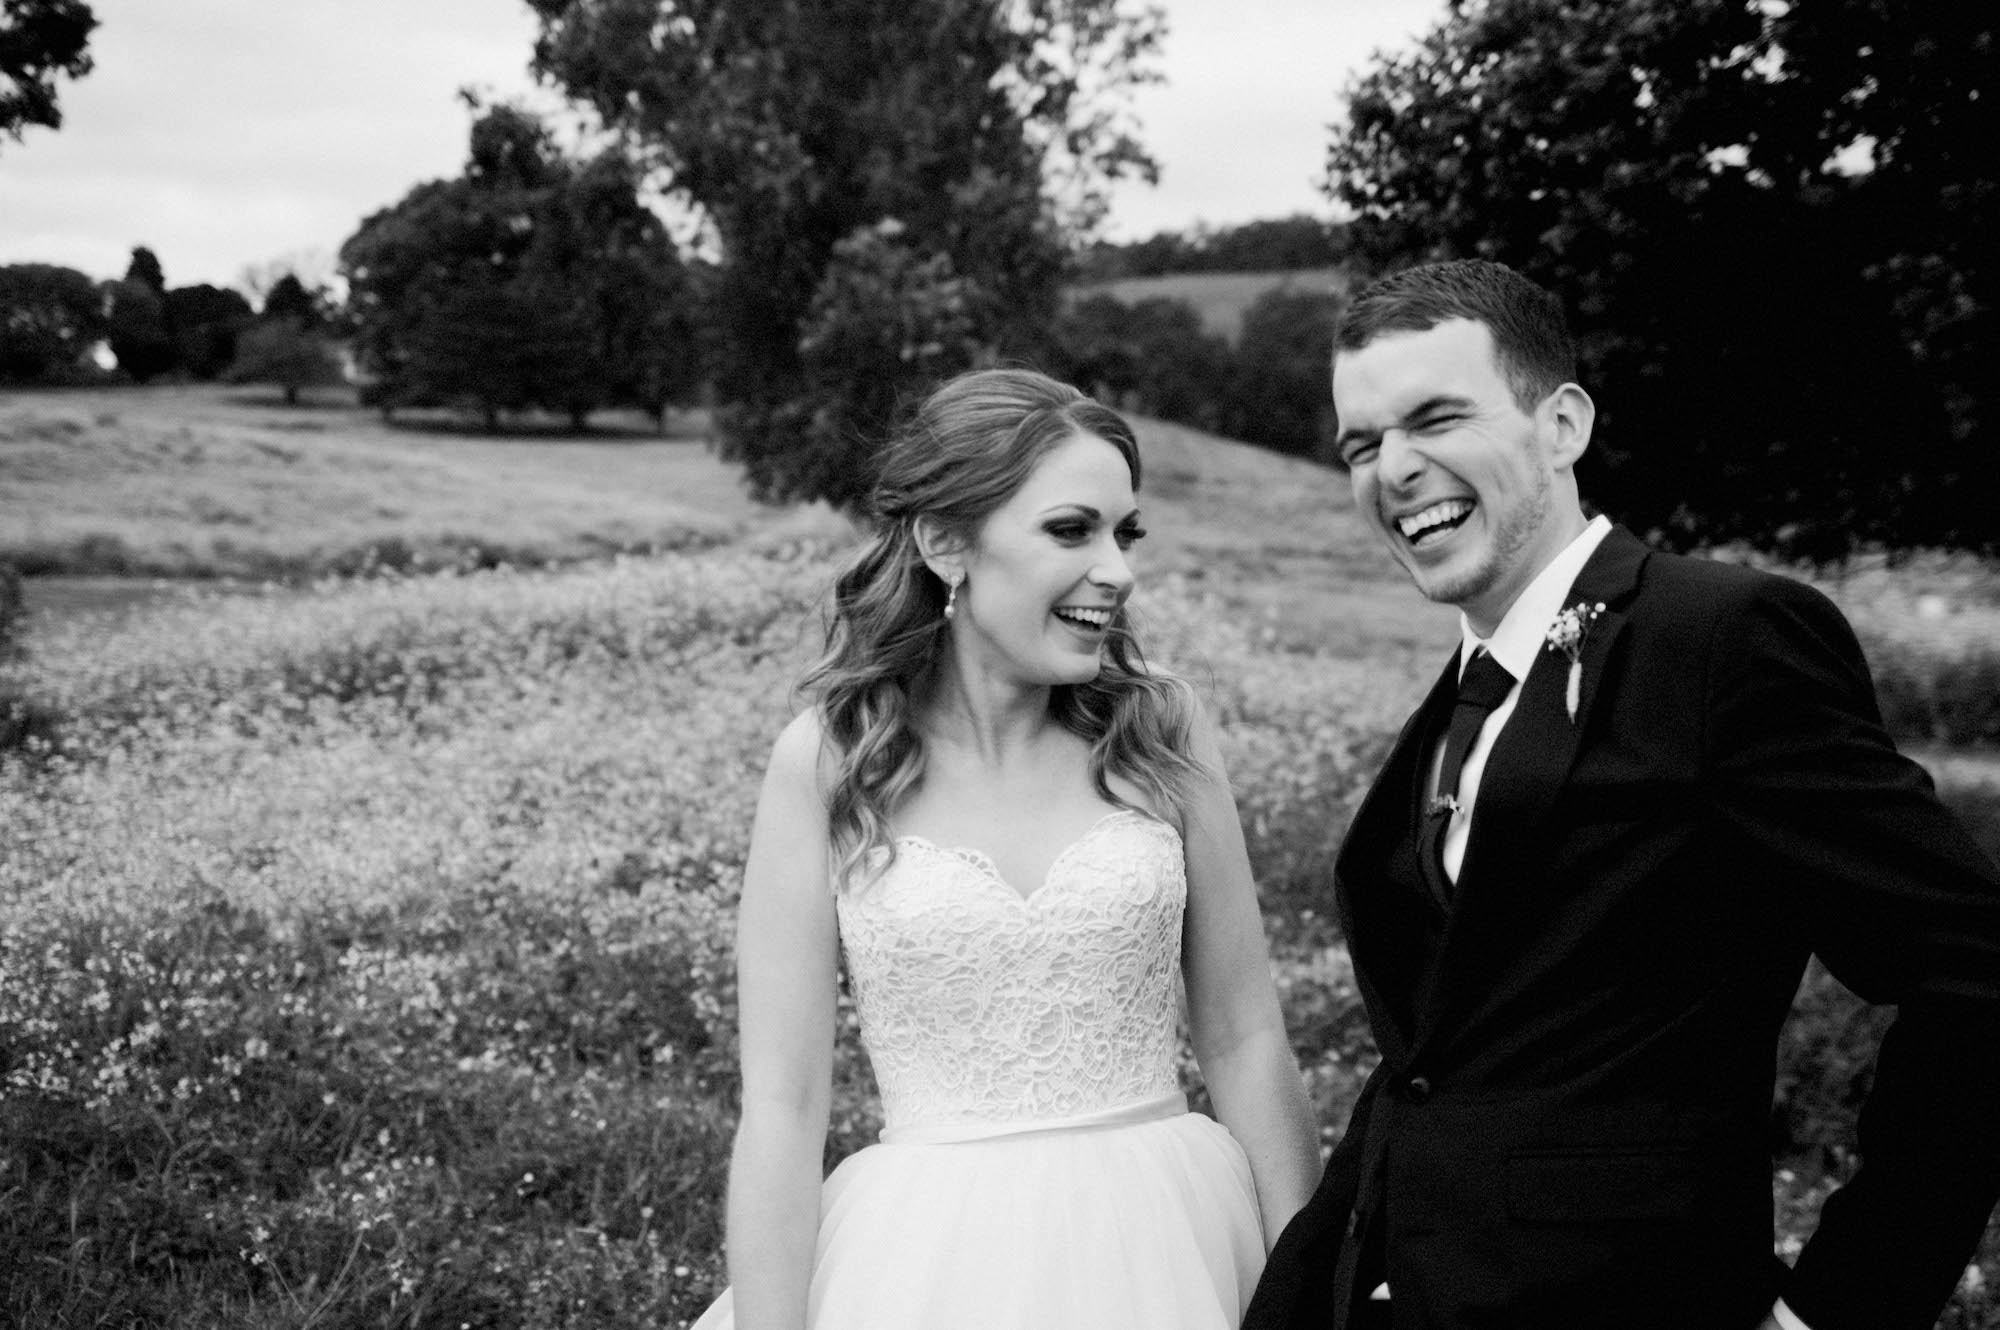 Authentic black & white wedding photography at Quarry Farm, WA.